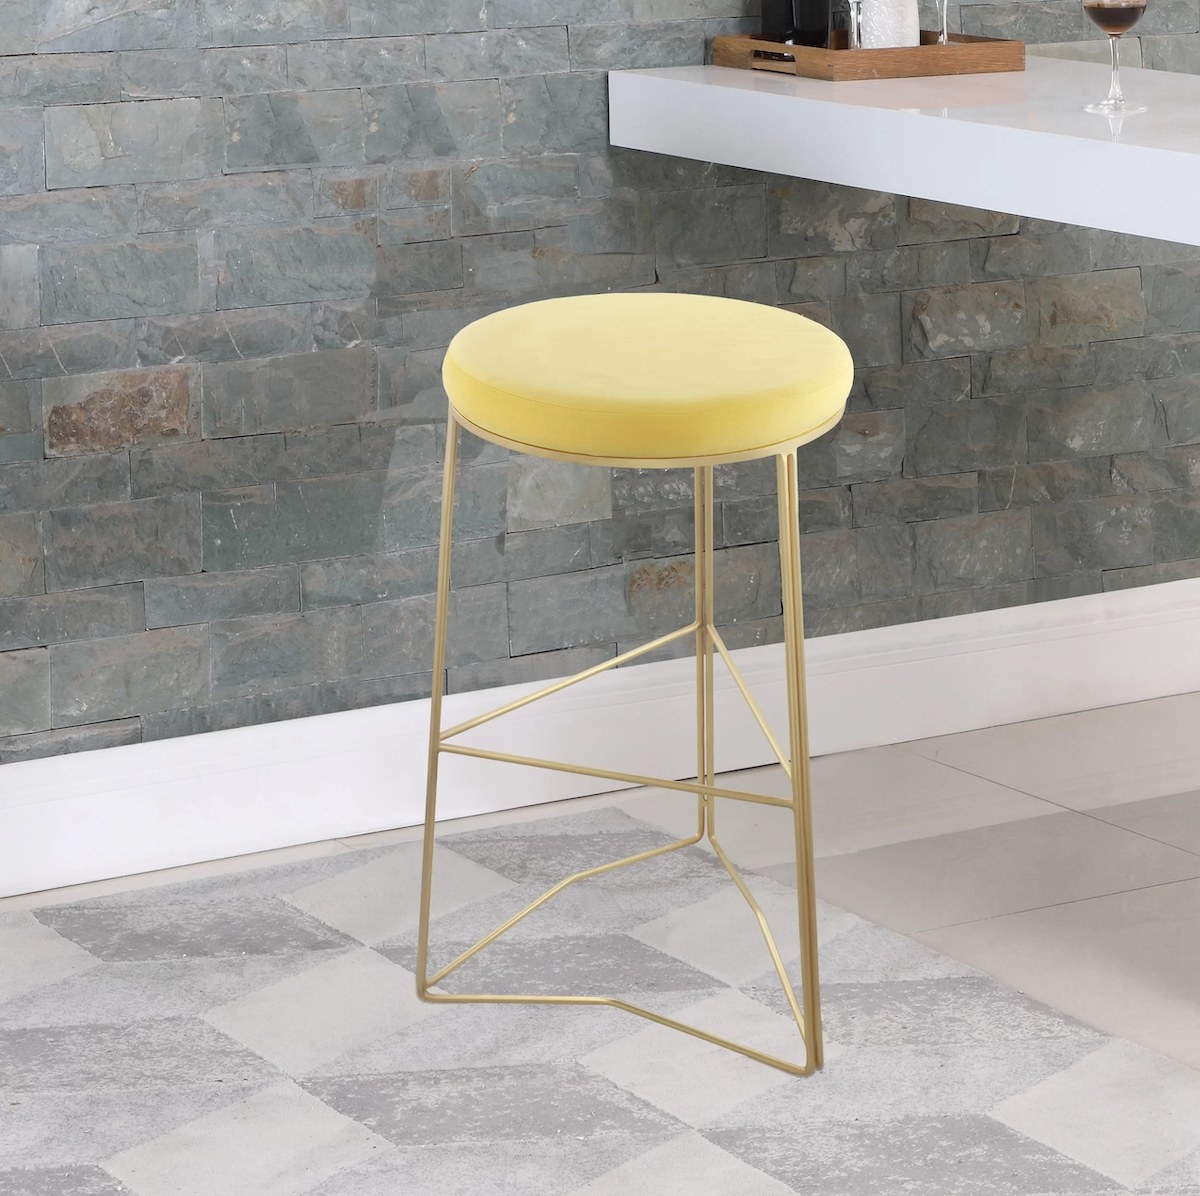 The round bar stool with a gold base and yellow cushioned seat in a kitchen